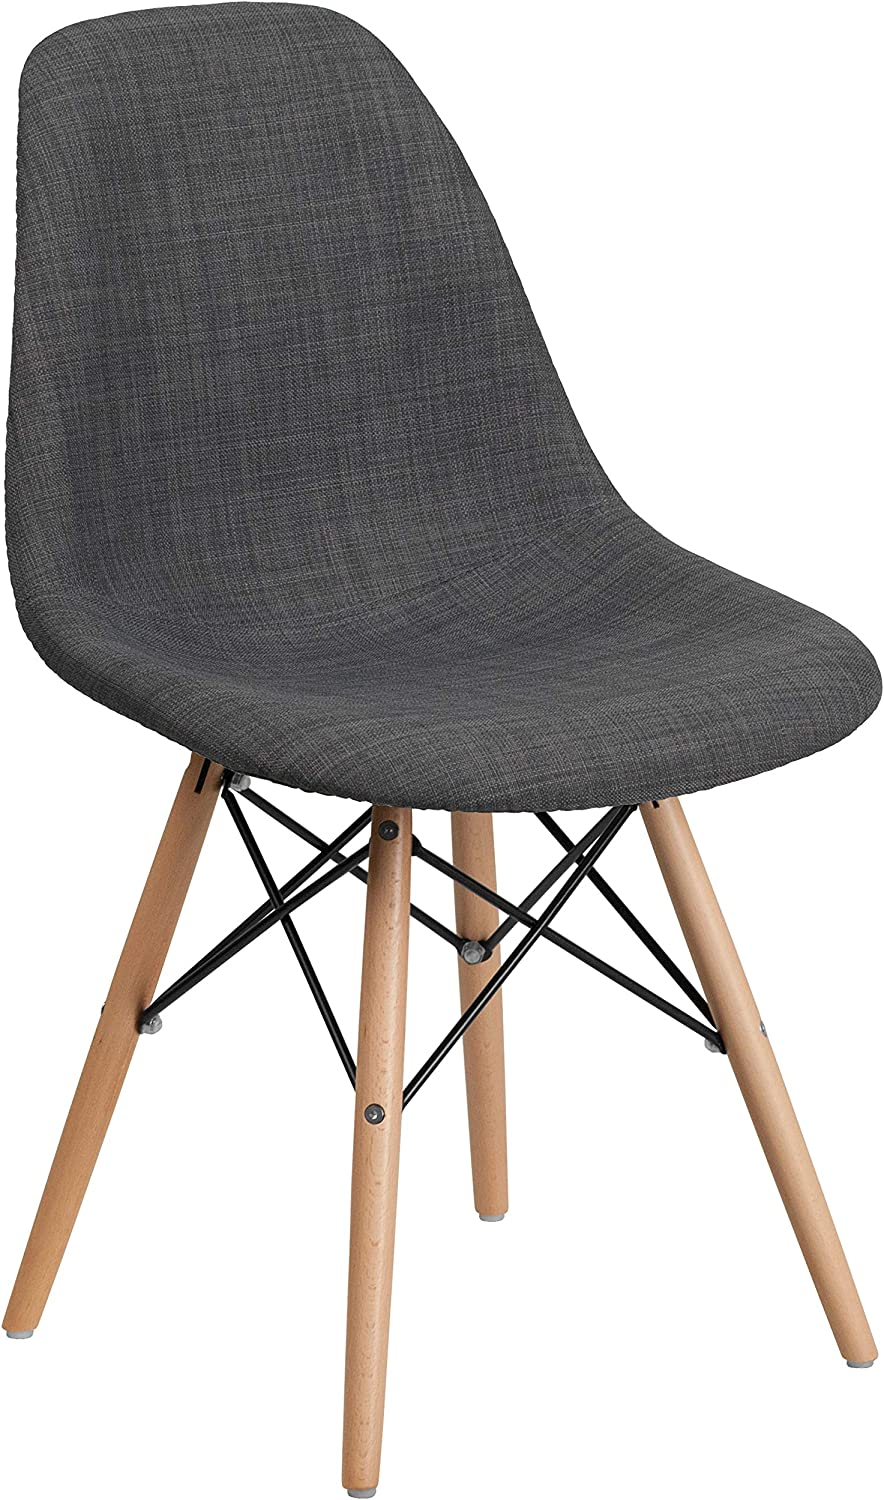 Flash Furniture Elon Series Siena Gray Fabric Chair with Wooden Legs